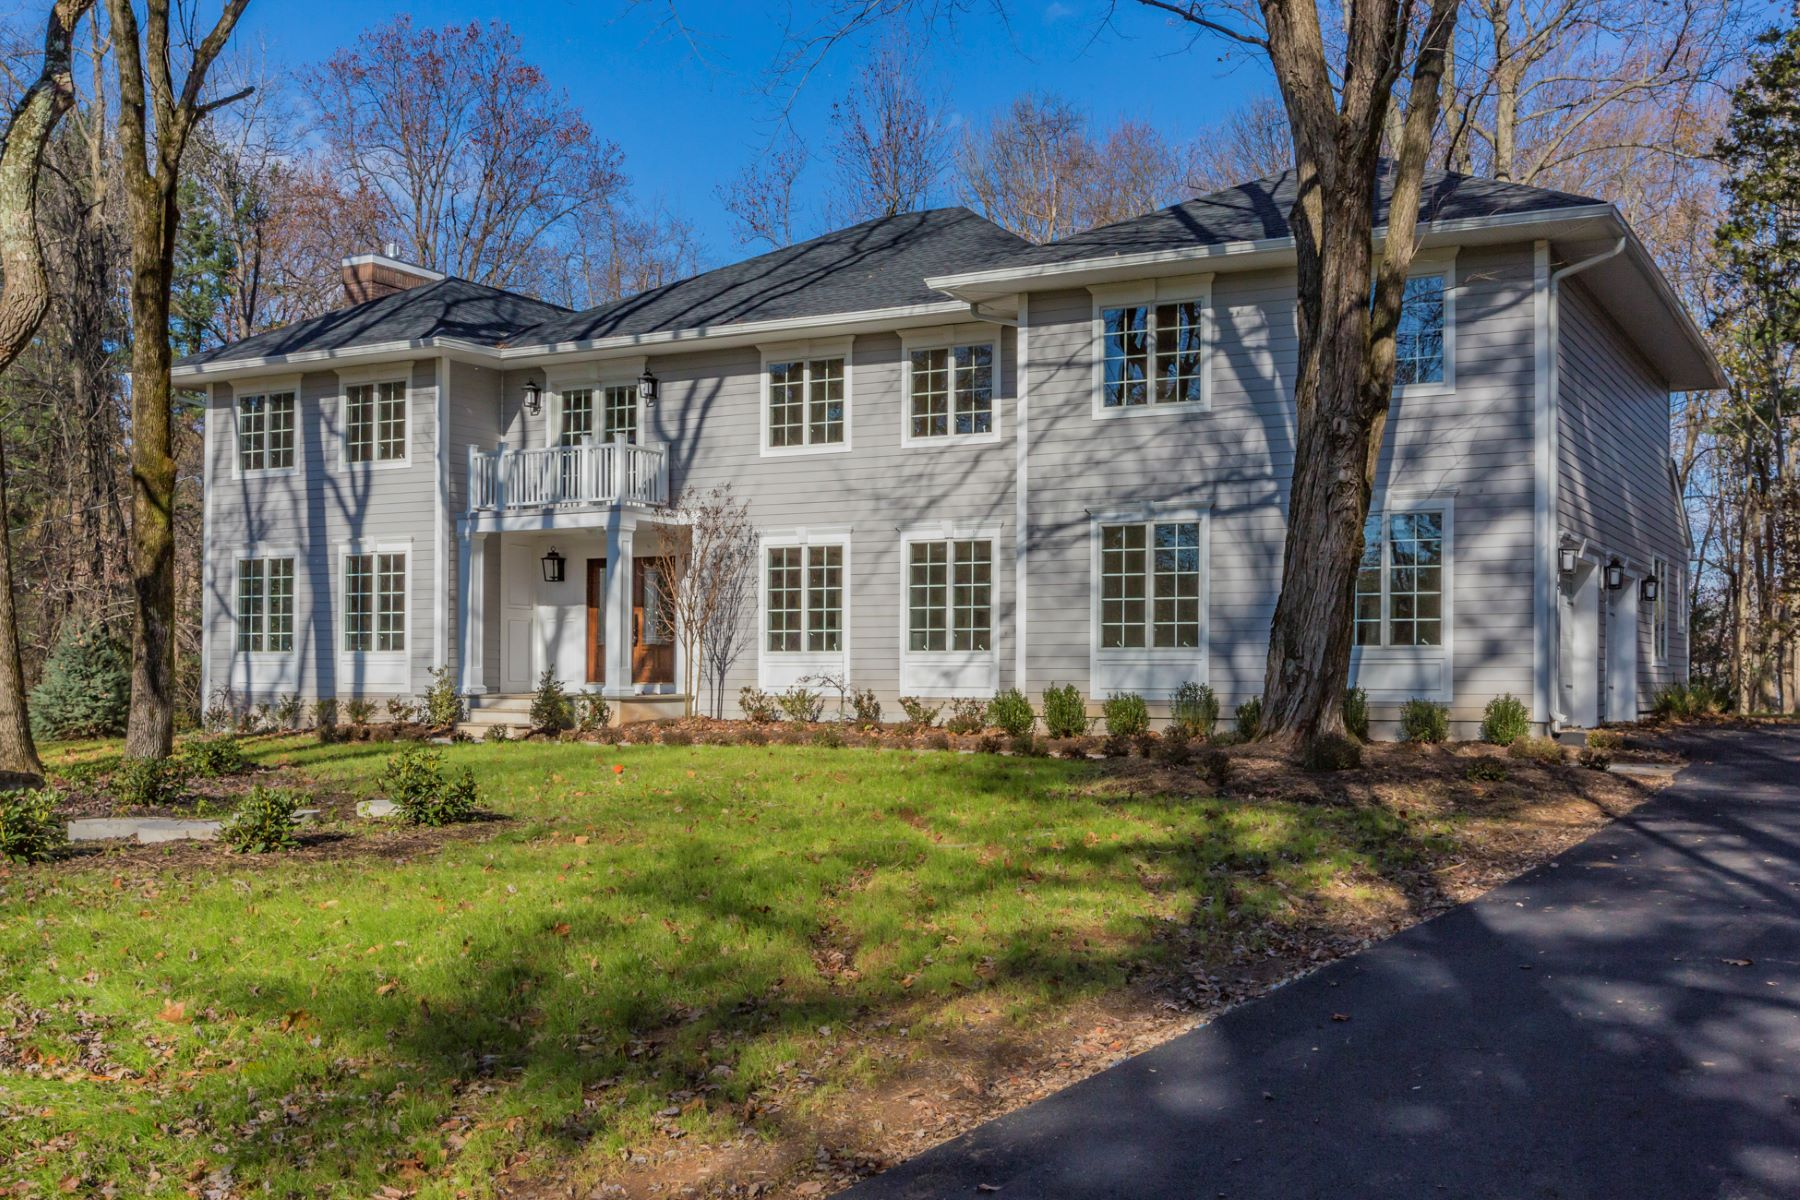 Villa per Vendita alle ore Dramatically Remodeled To The Highest Standards 1163 Great Road, Princeton, New Jersey 08540 Stati UnitiIn/In giro: Princeton